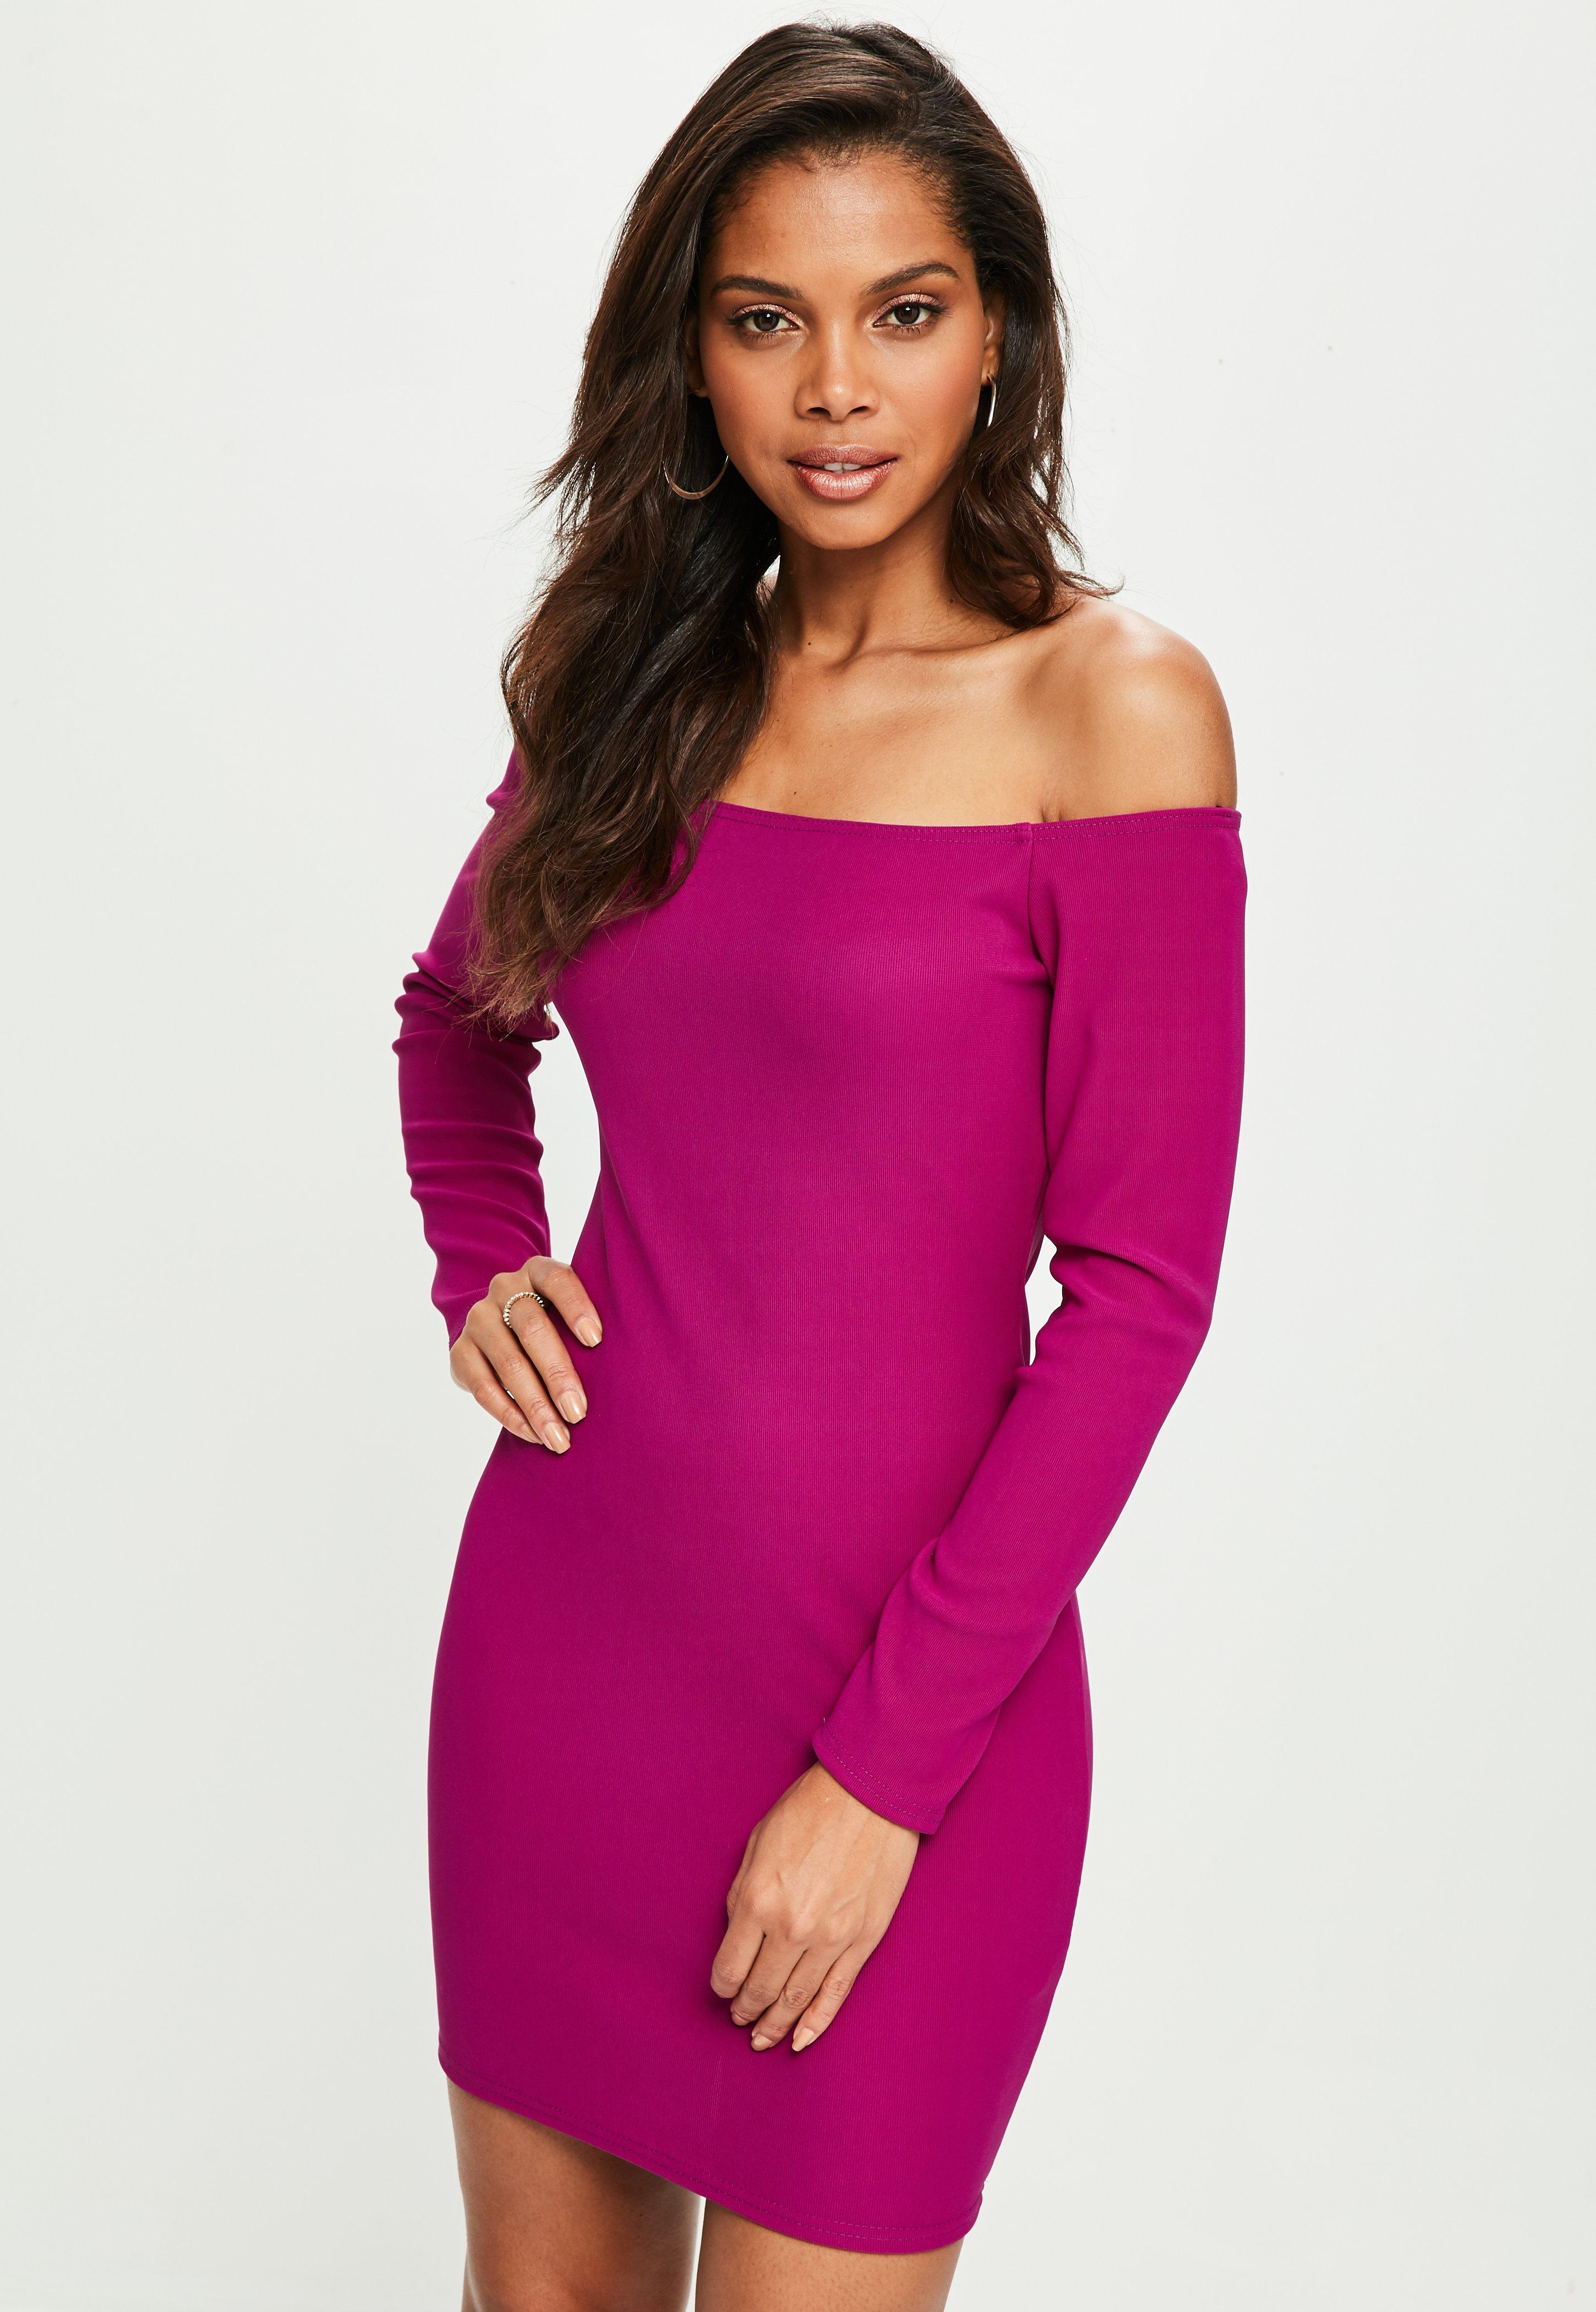 Party Outfits | Party Wear & Going Out Clothes - Missguided